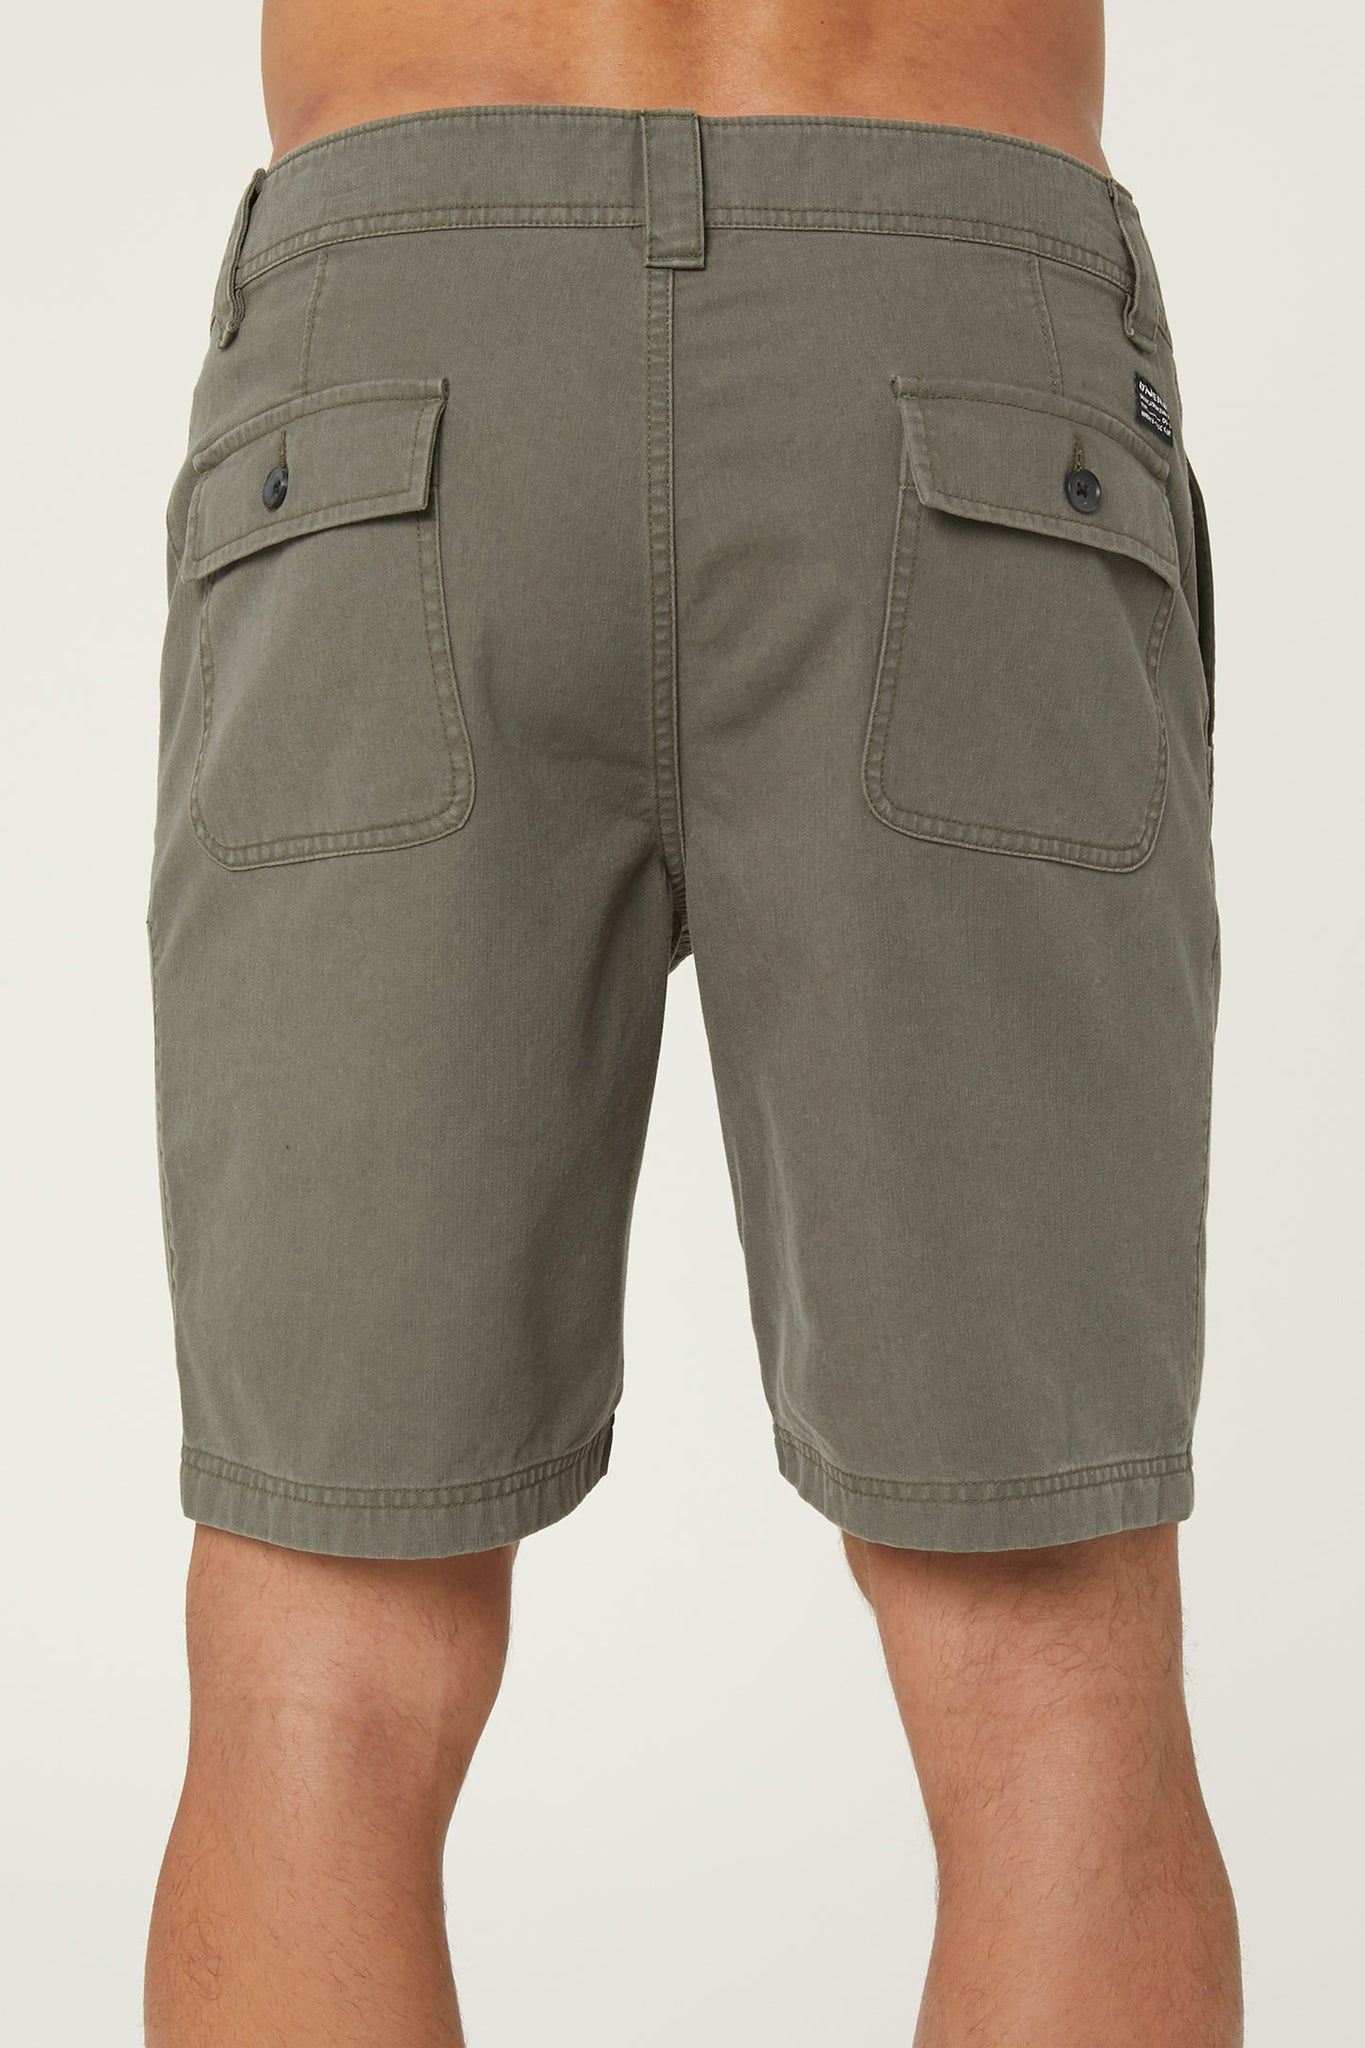 South Gate Shorts | O'Neill Clothing USA